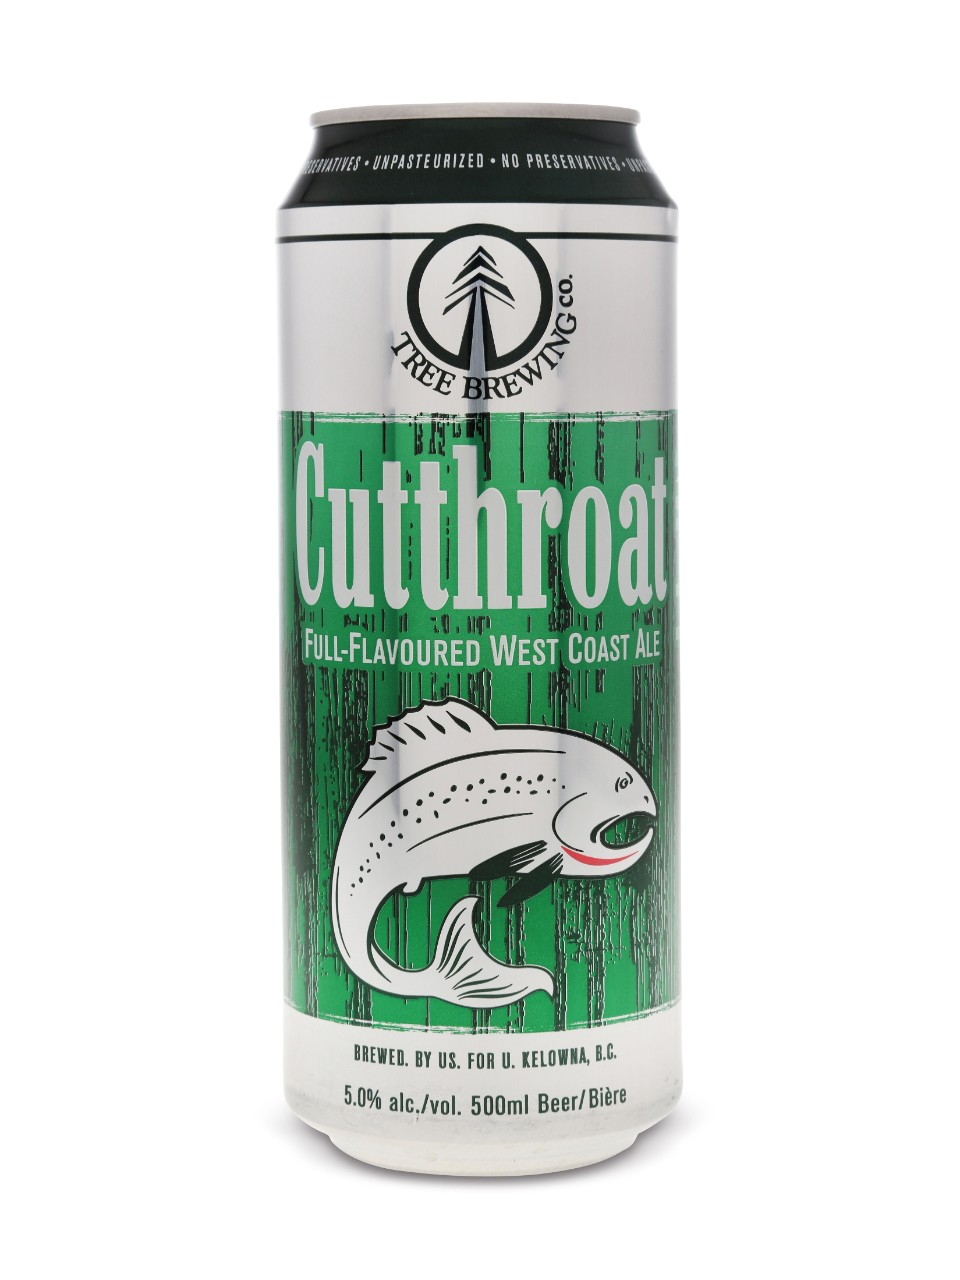 Cutthroat West Coast Ale